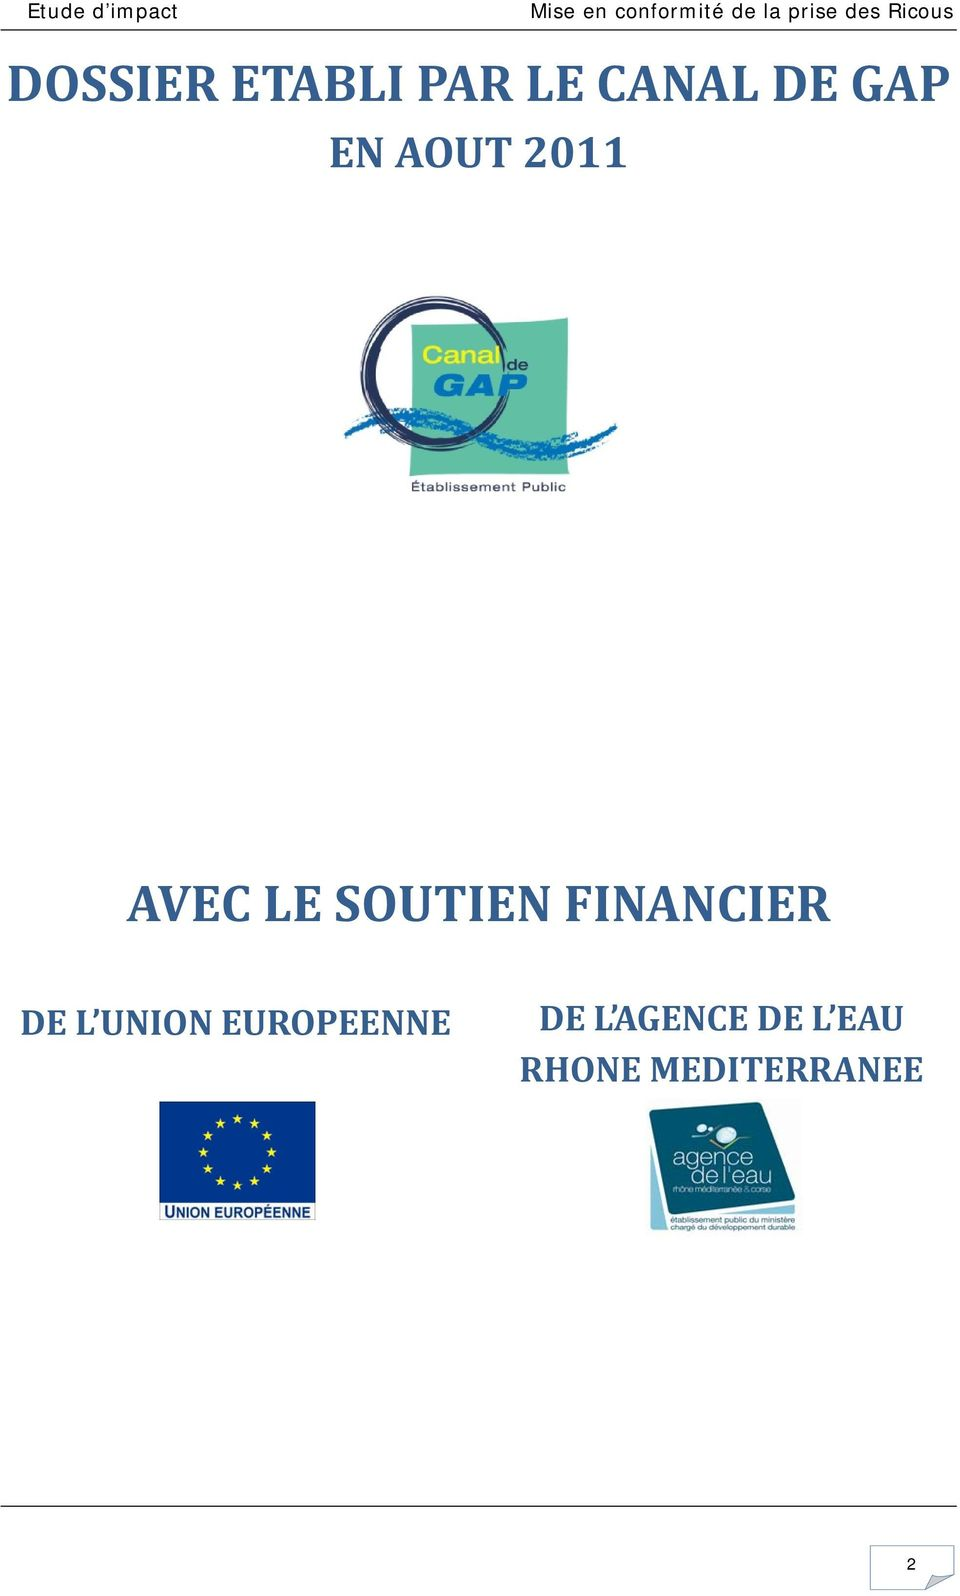 FINANCIER DE L UNION EUROPEENNE DE